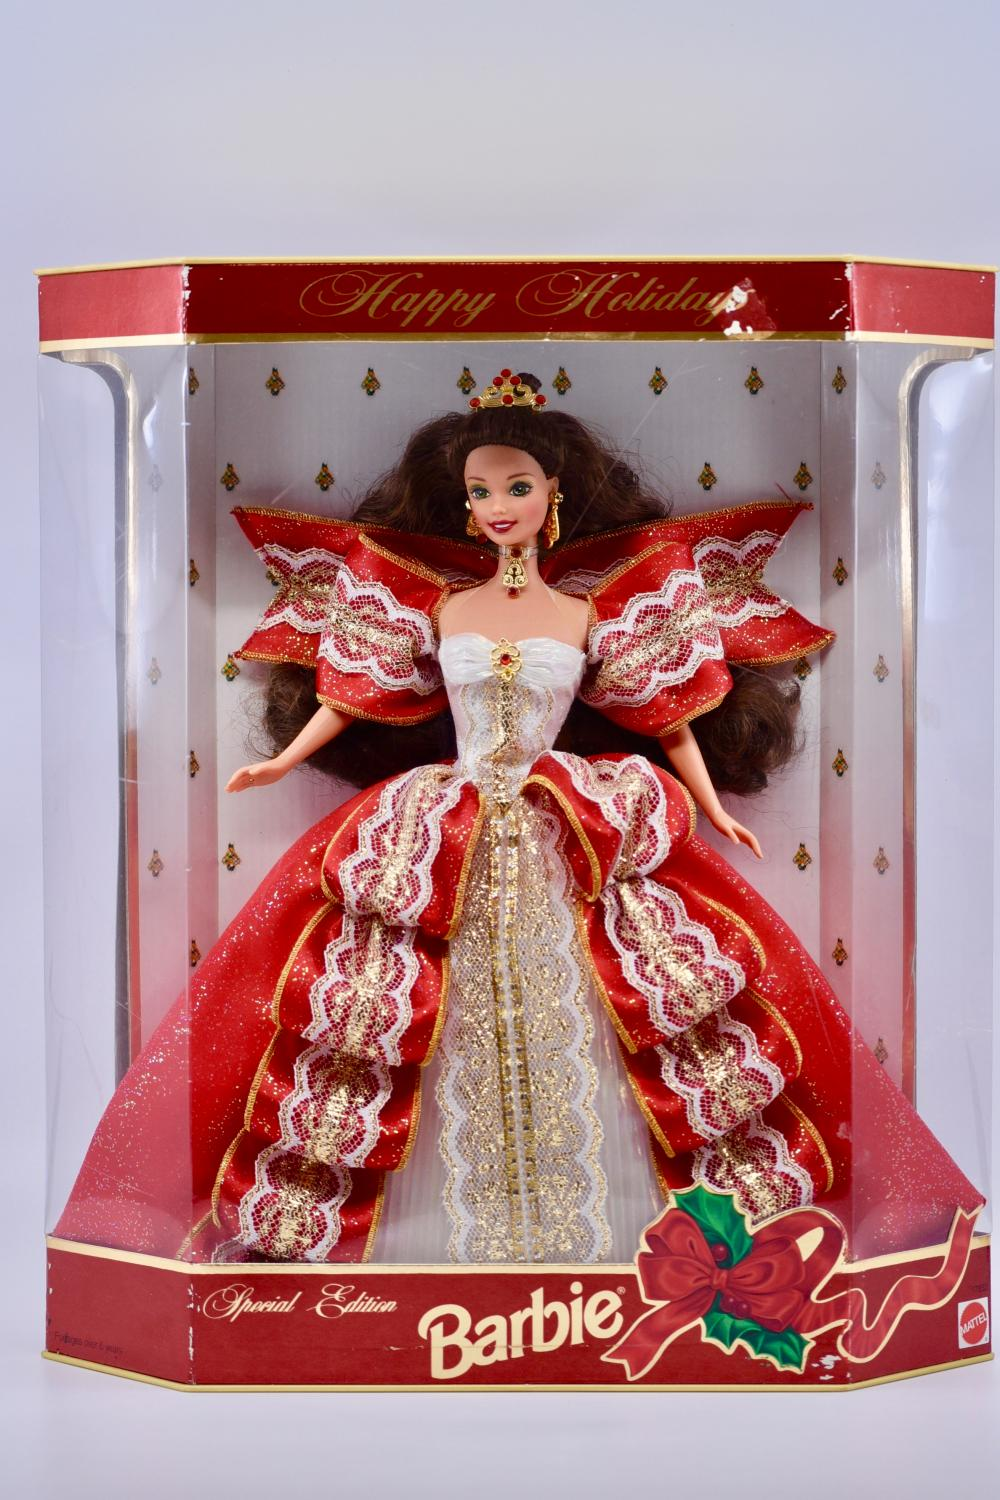 1997 10th Anniversary red and white Barbie .